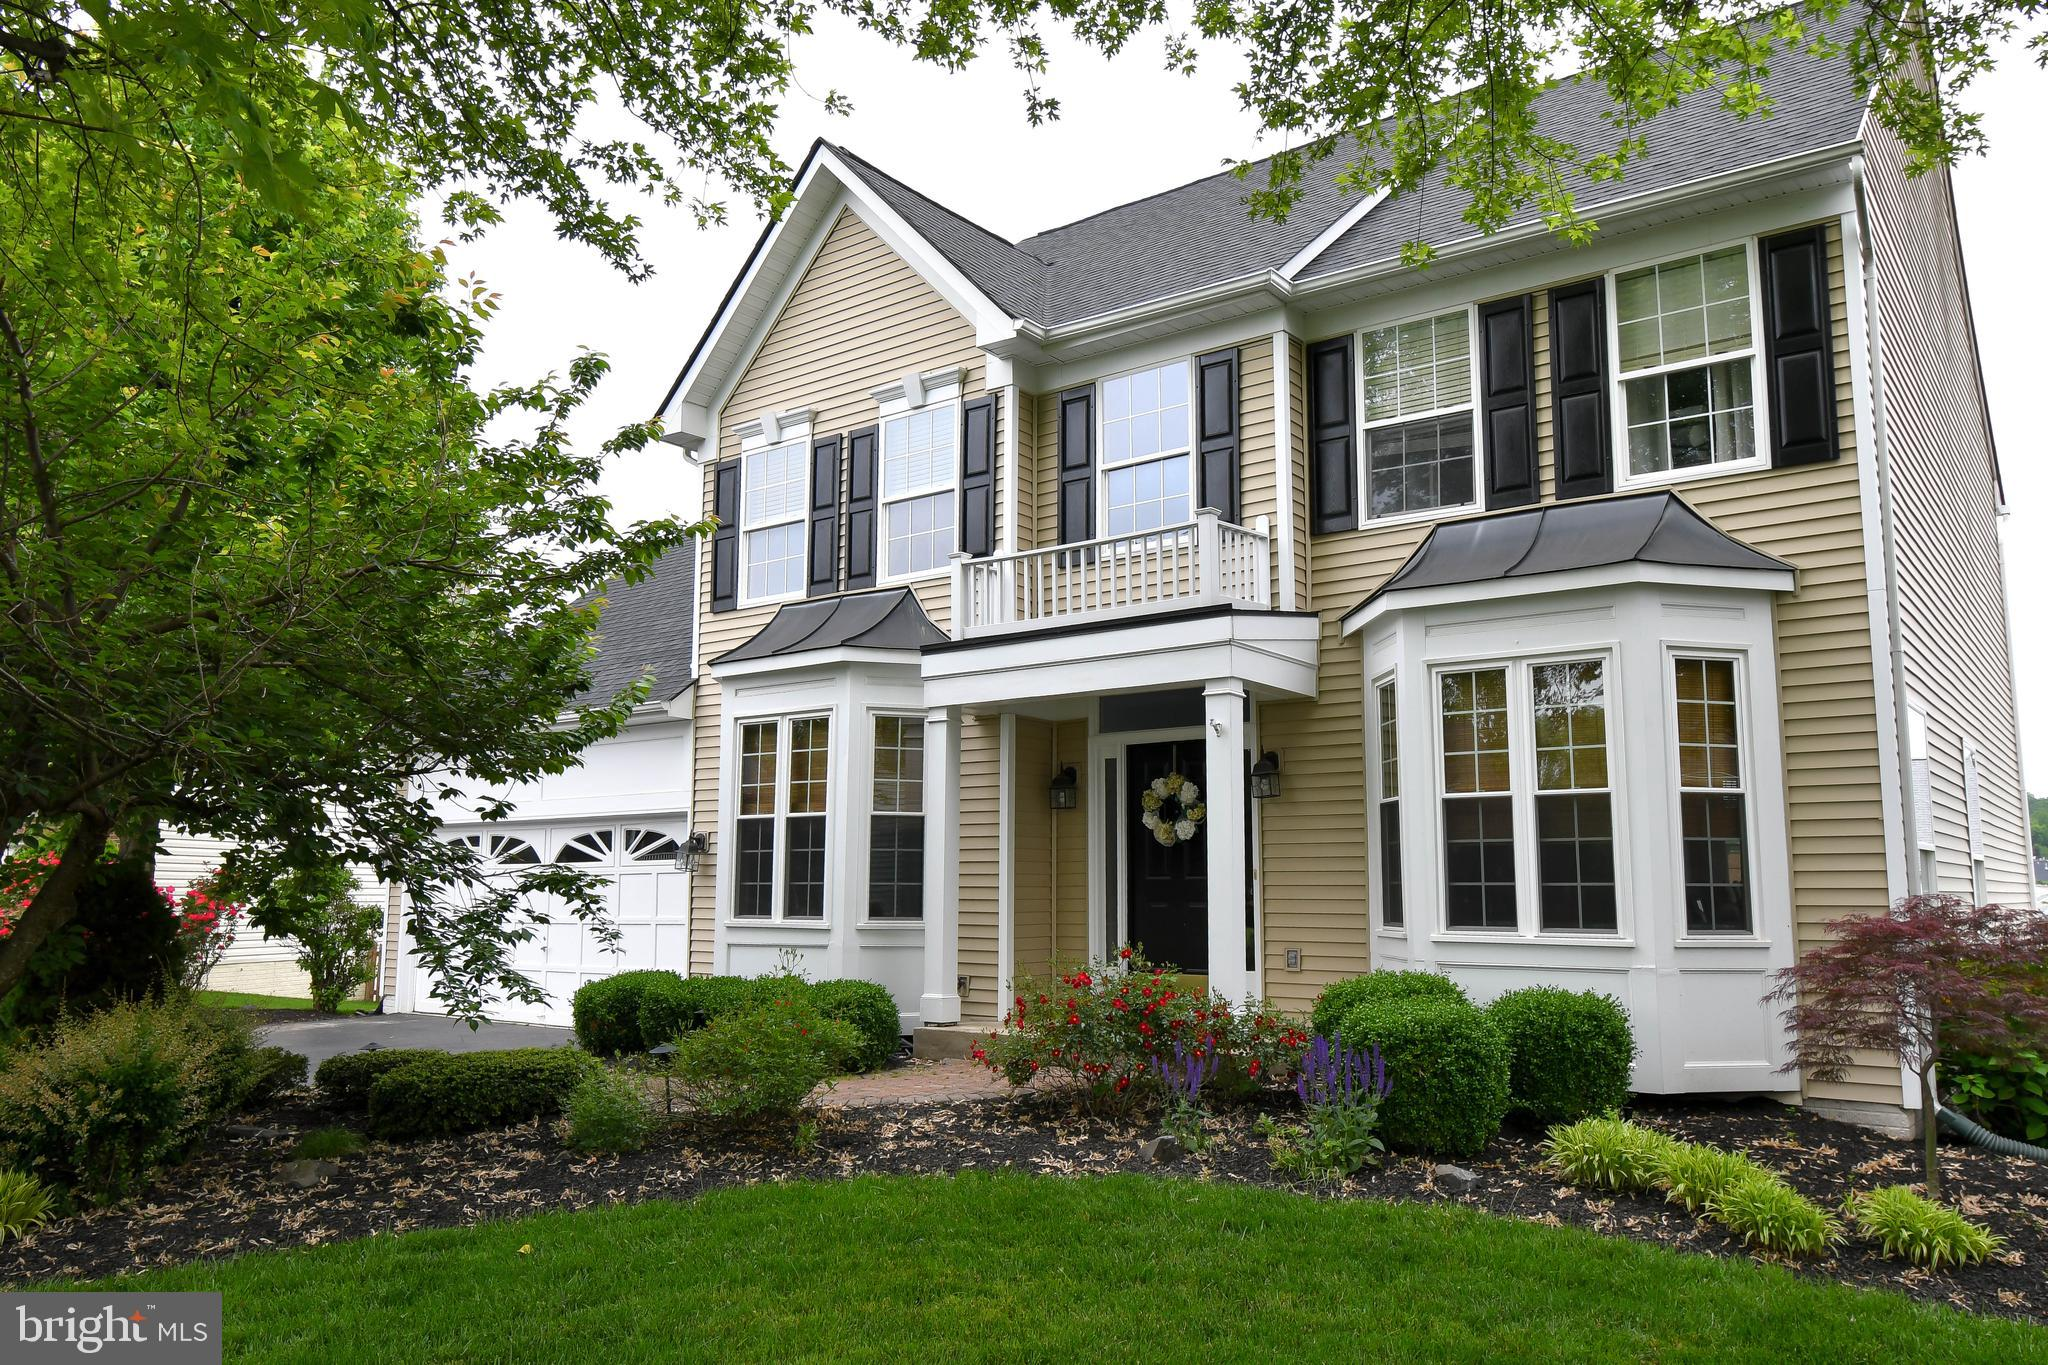 COMING SOON 5/30/20********** STUNNING 4 BEDROOM 2.5 BATH HOME WITH 3 FULLY FINISHED LEVELS ON QUITE